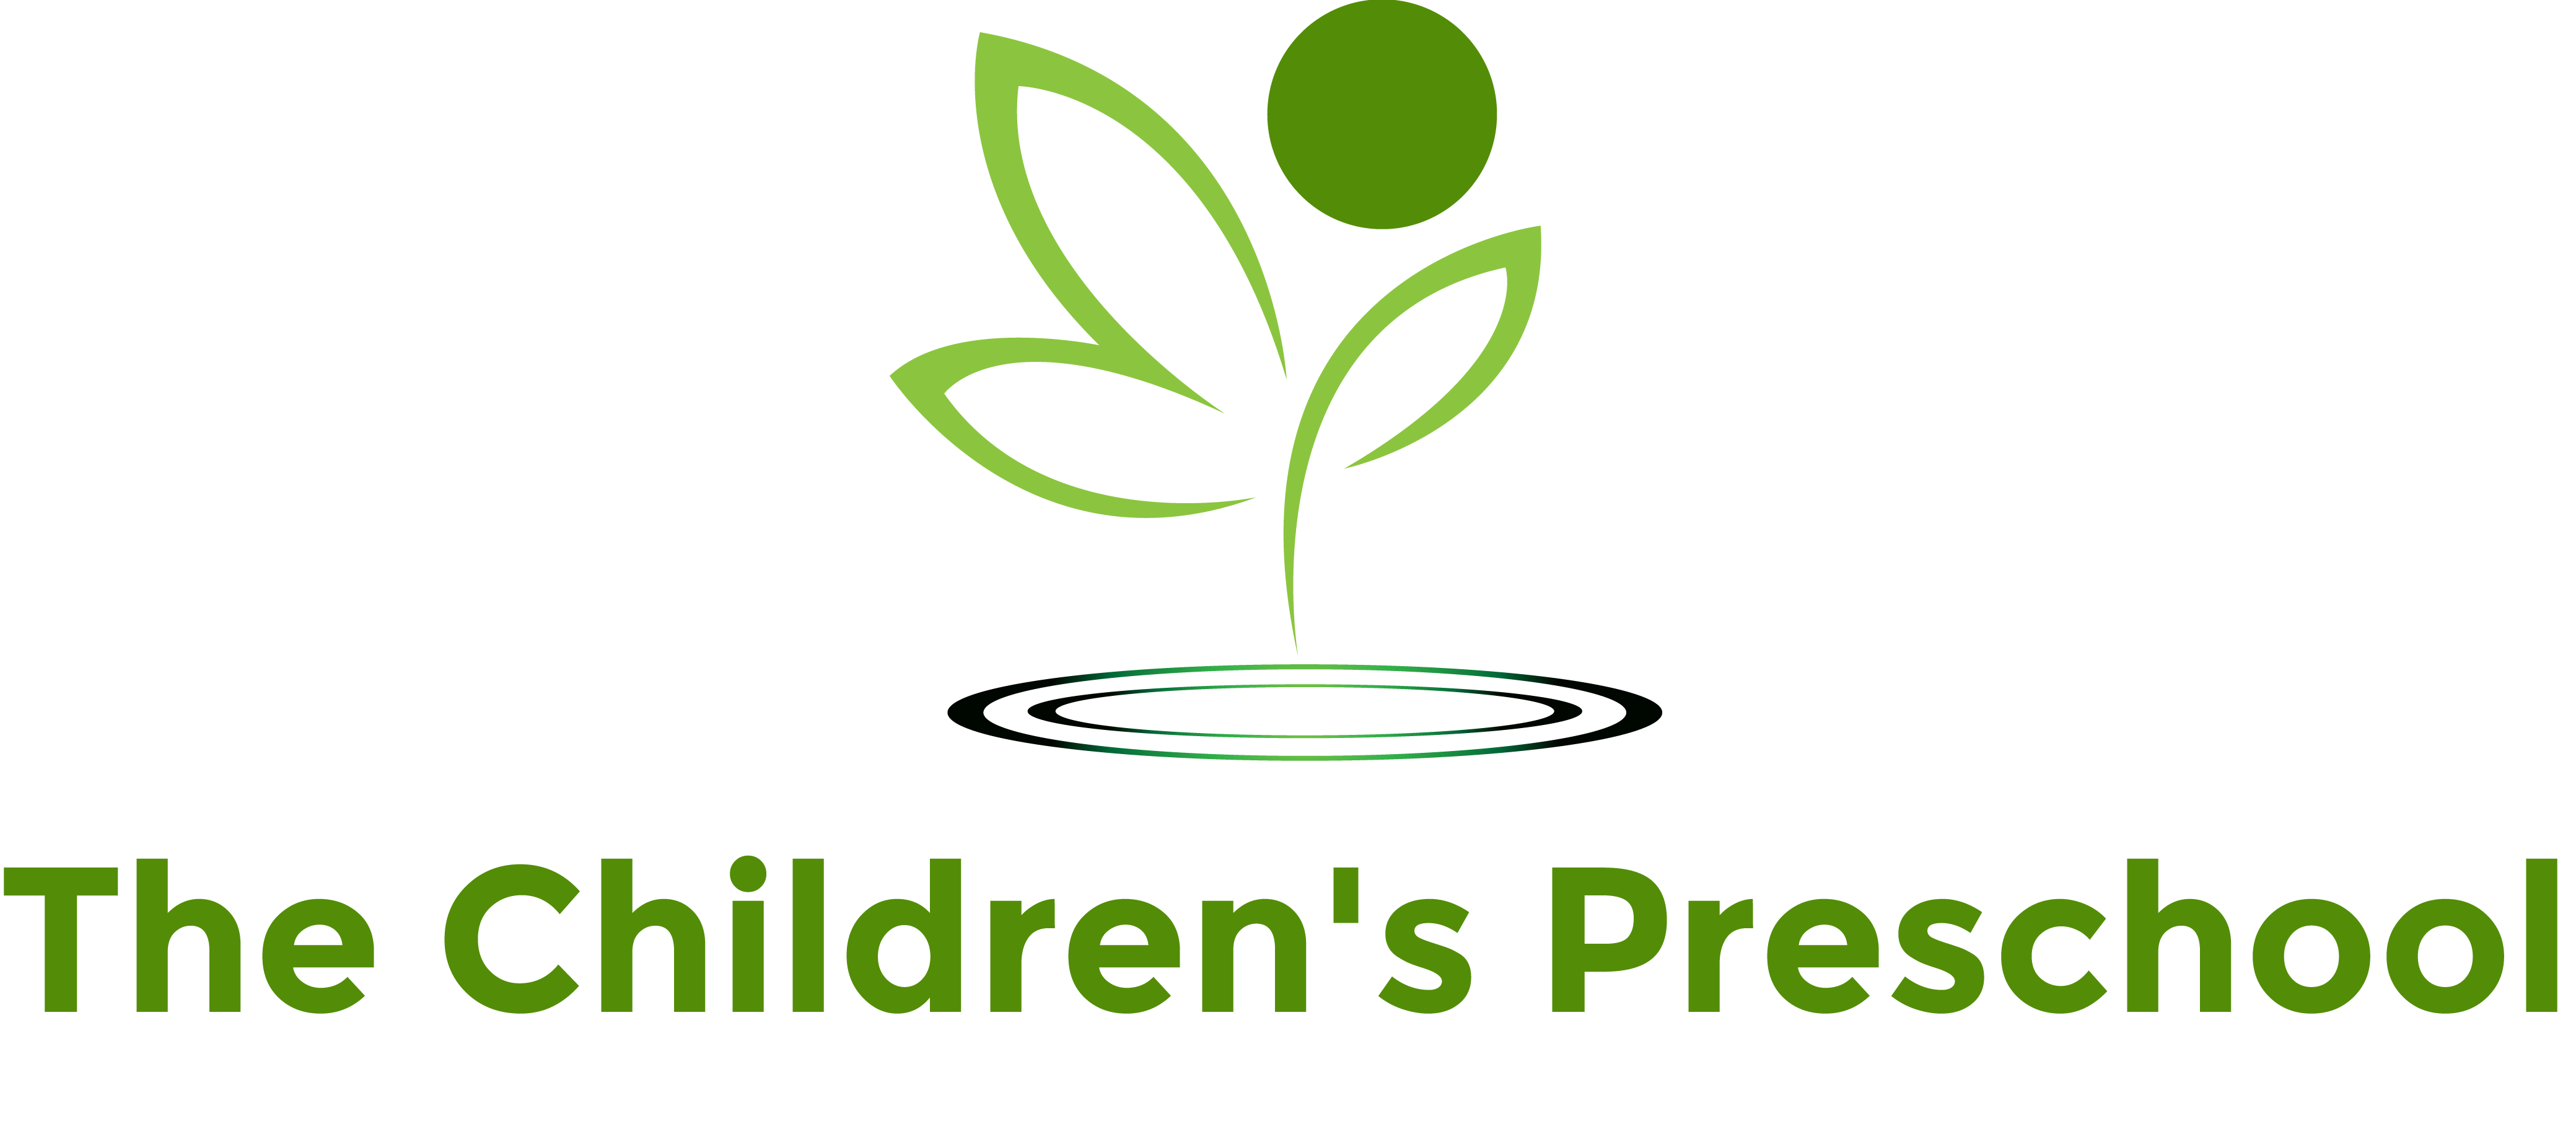 The Children's Preschool